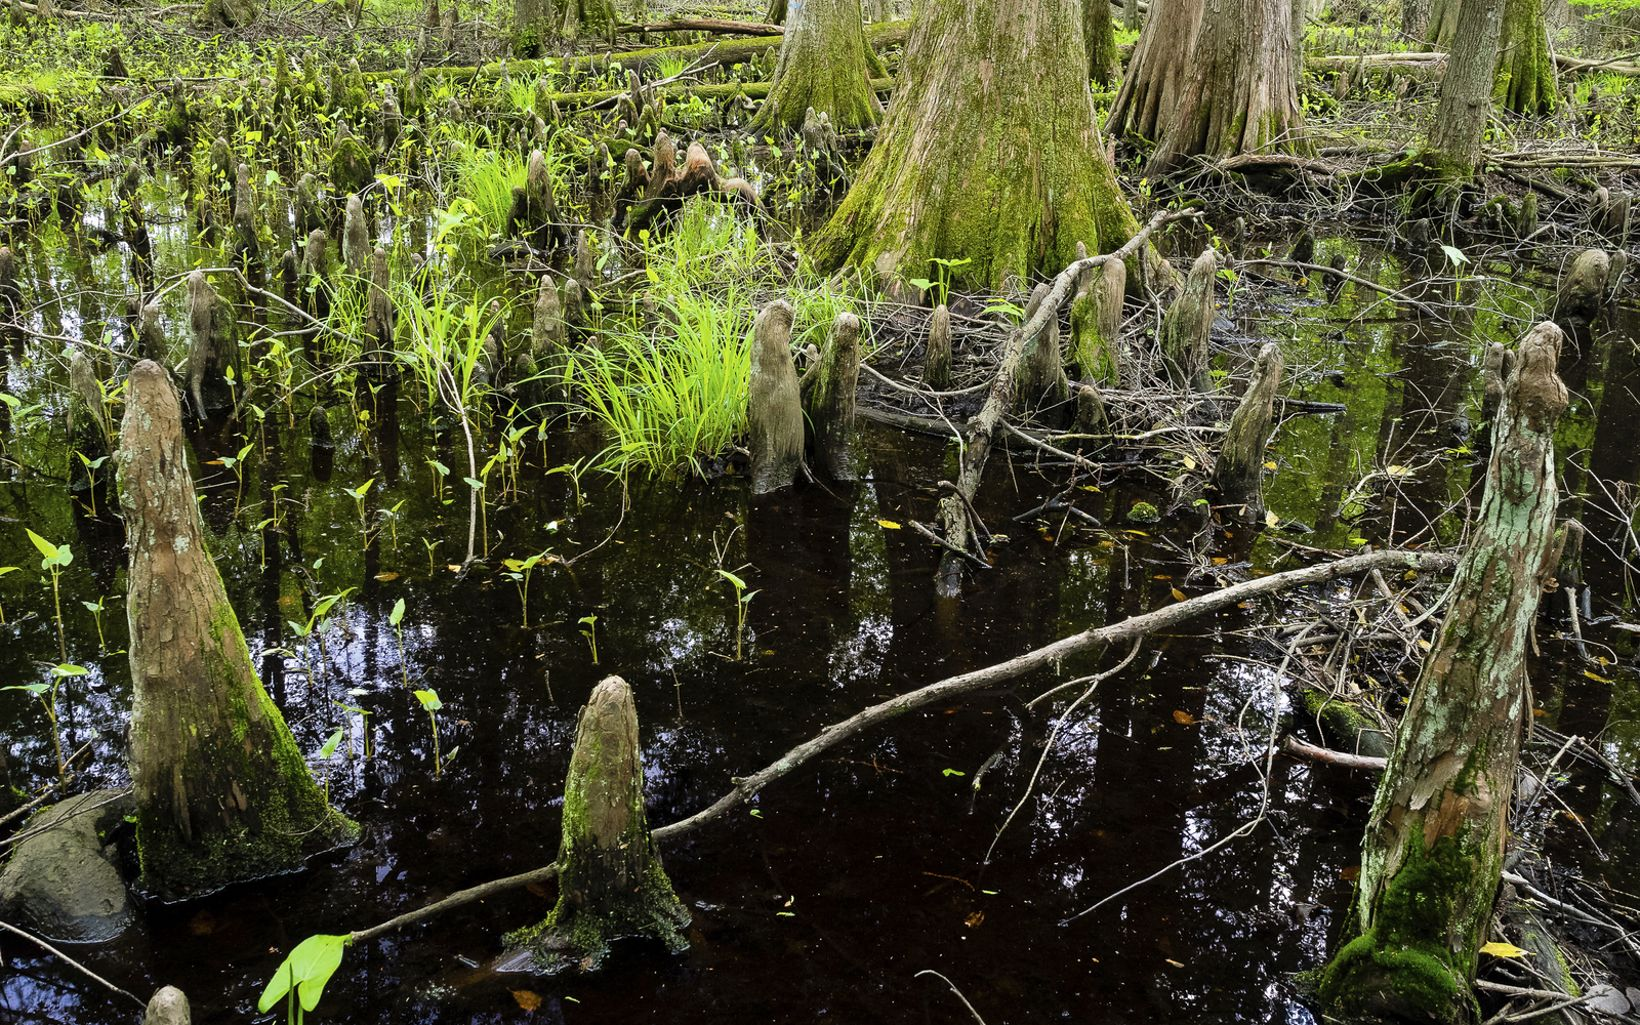 Towering cypress trees, cypress knees and bright green foliage rise from the swamp waters in Nassawango Creek Preserve.